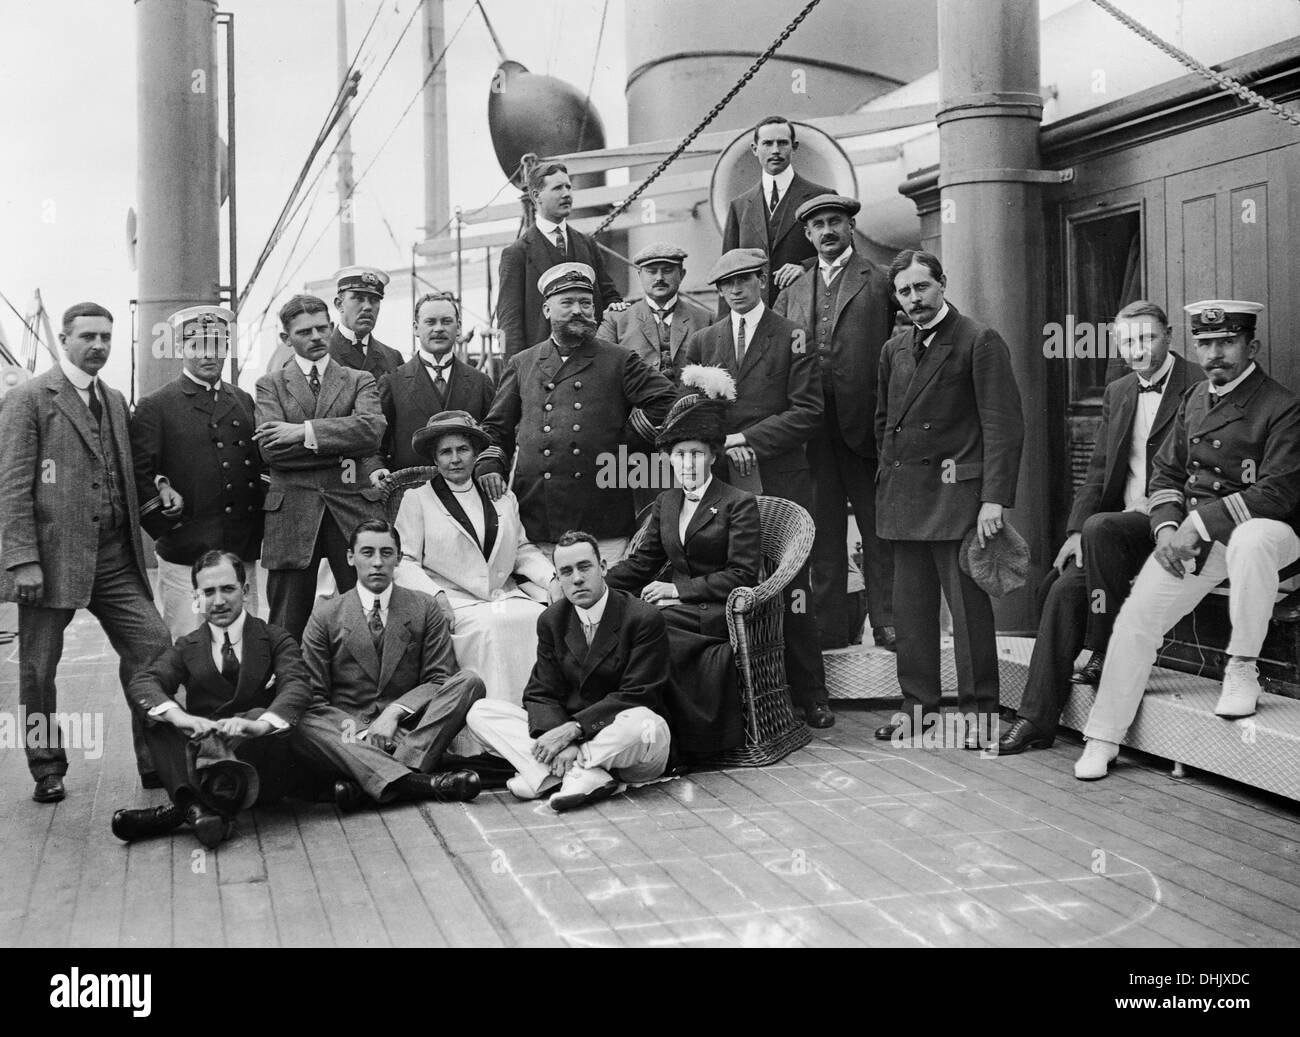 View of an ocean liner of the Hapag Hamburg (Hamburg America Line). Passengers are pictured with the captain and officers on deck, photograph taken around 1910. The image was taken by the German photographer Oswald Lübeck, one of the earliest representatives of travel photography and ship photography aboard passenger ships. Photo: Deutsche Fotothek/Oswald Lübeck - Stock Image